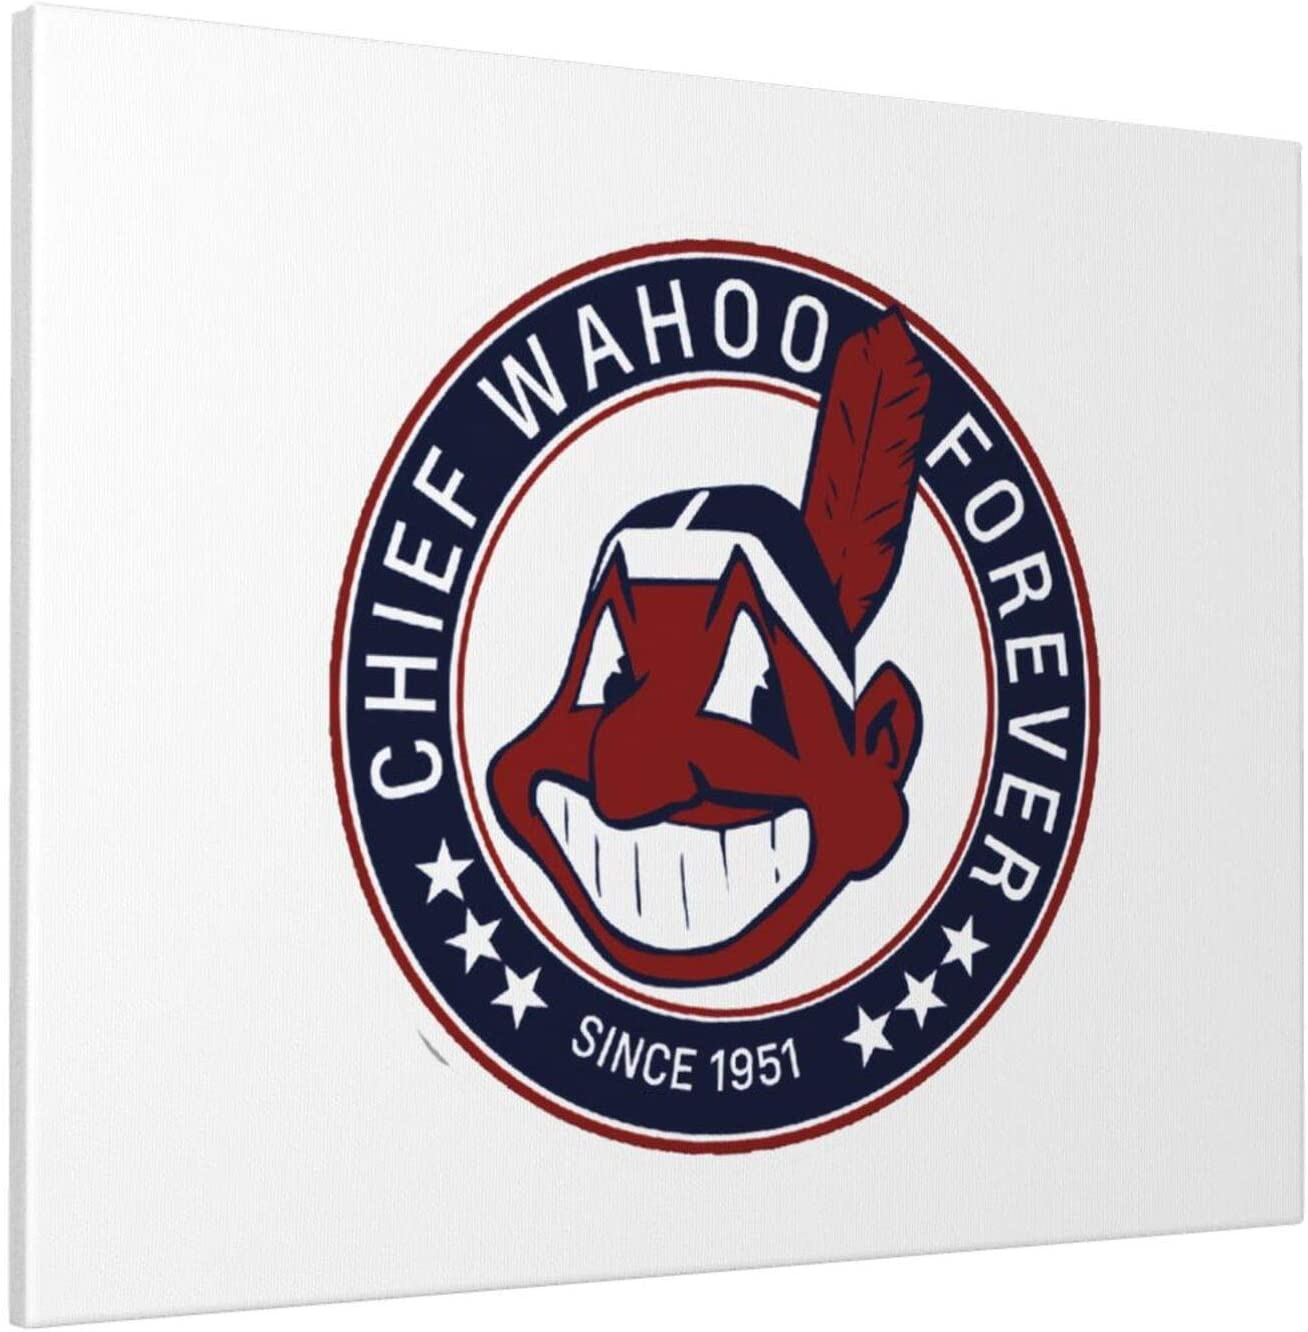 Wehoiweh Long Live Chief Wahoo Decor Frameless Paintings Painting 16x20 in for Living Room Bedroom